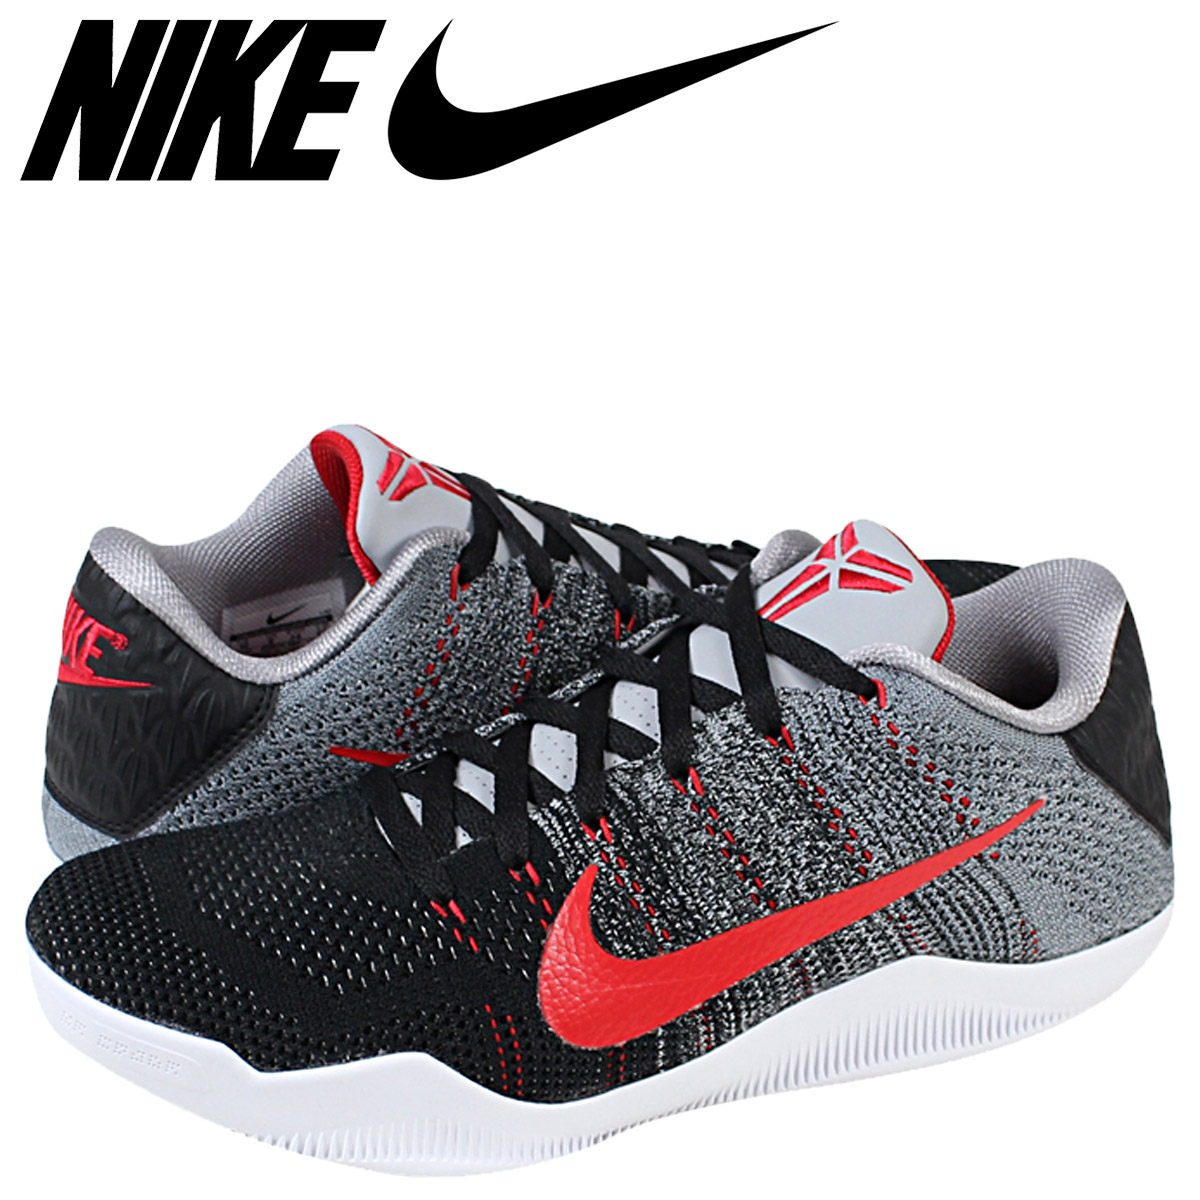 e1b30a695ed SneaK Online Shop  Nike NIKE Corby 11 sneakers KOBE XI ELITE LOW ...